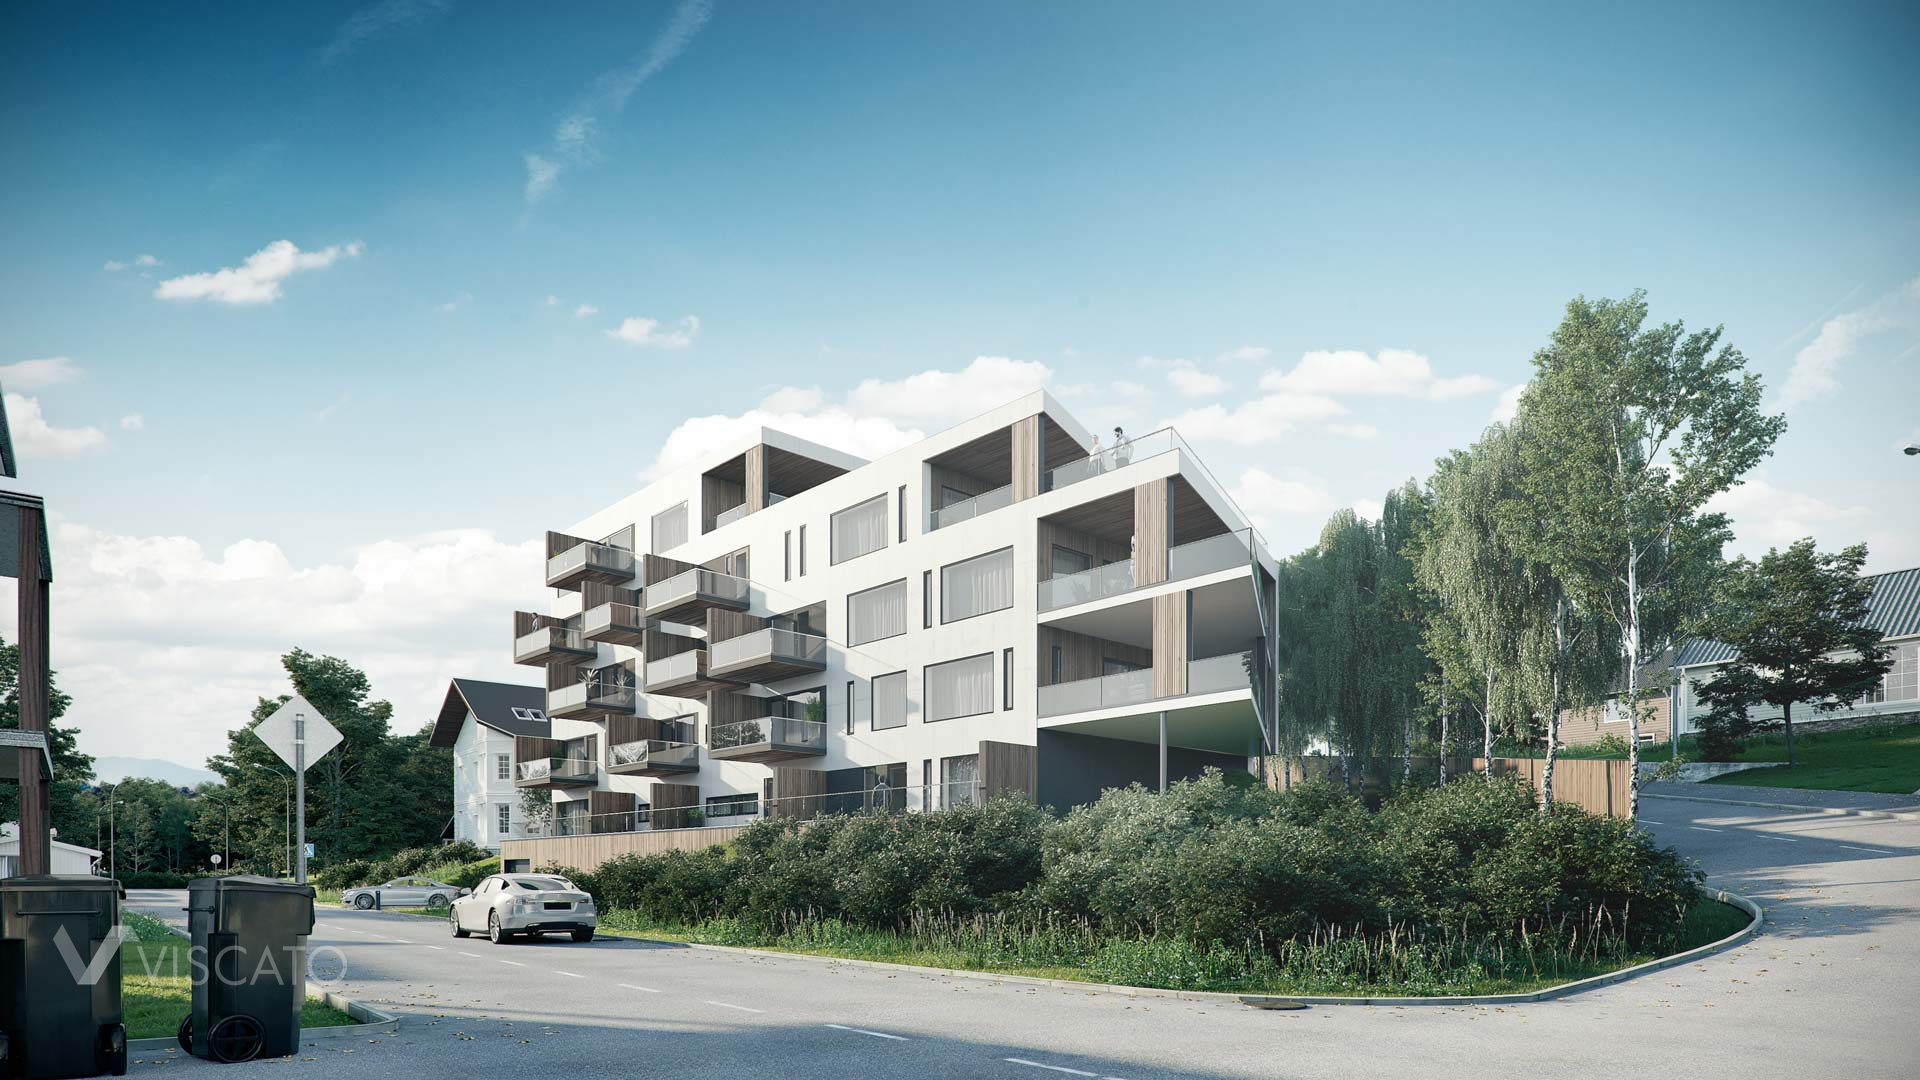 Block of flats with terraces, 3D visualization